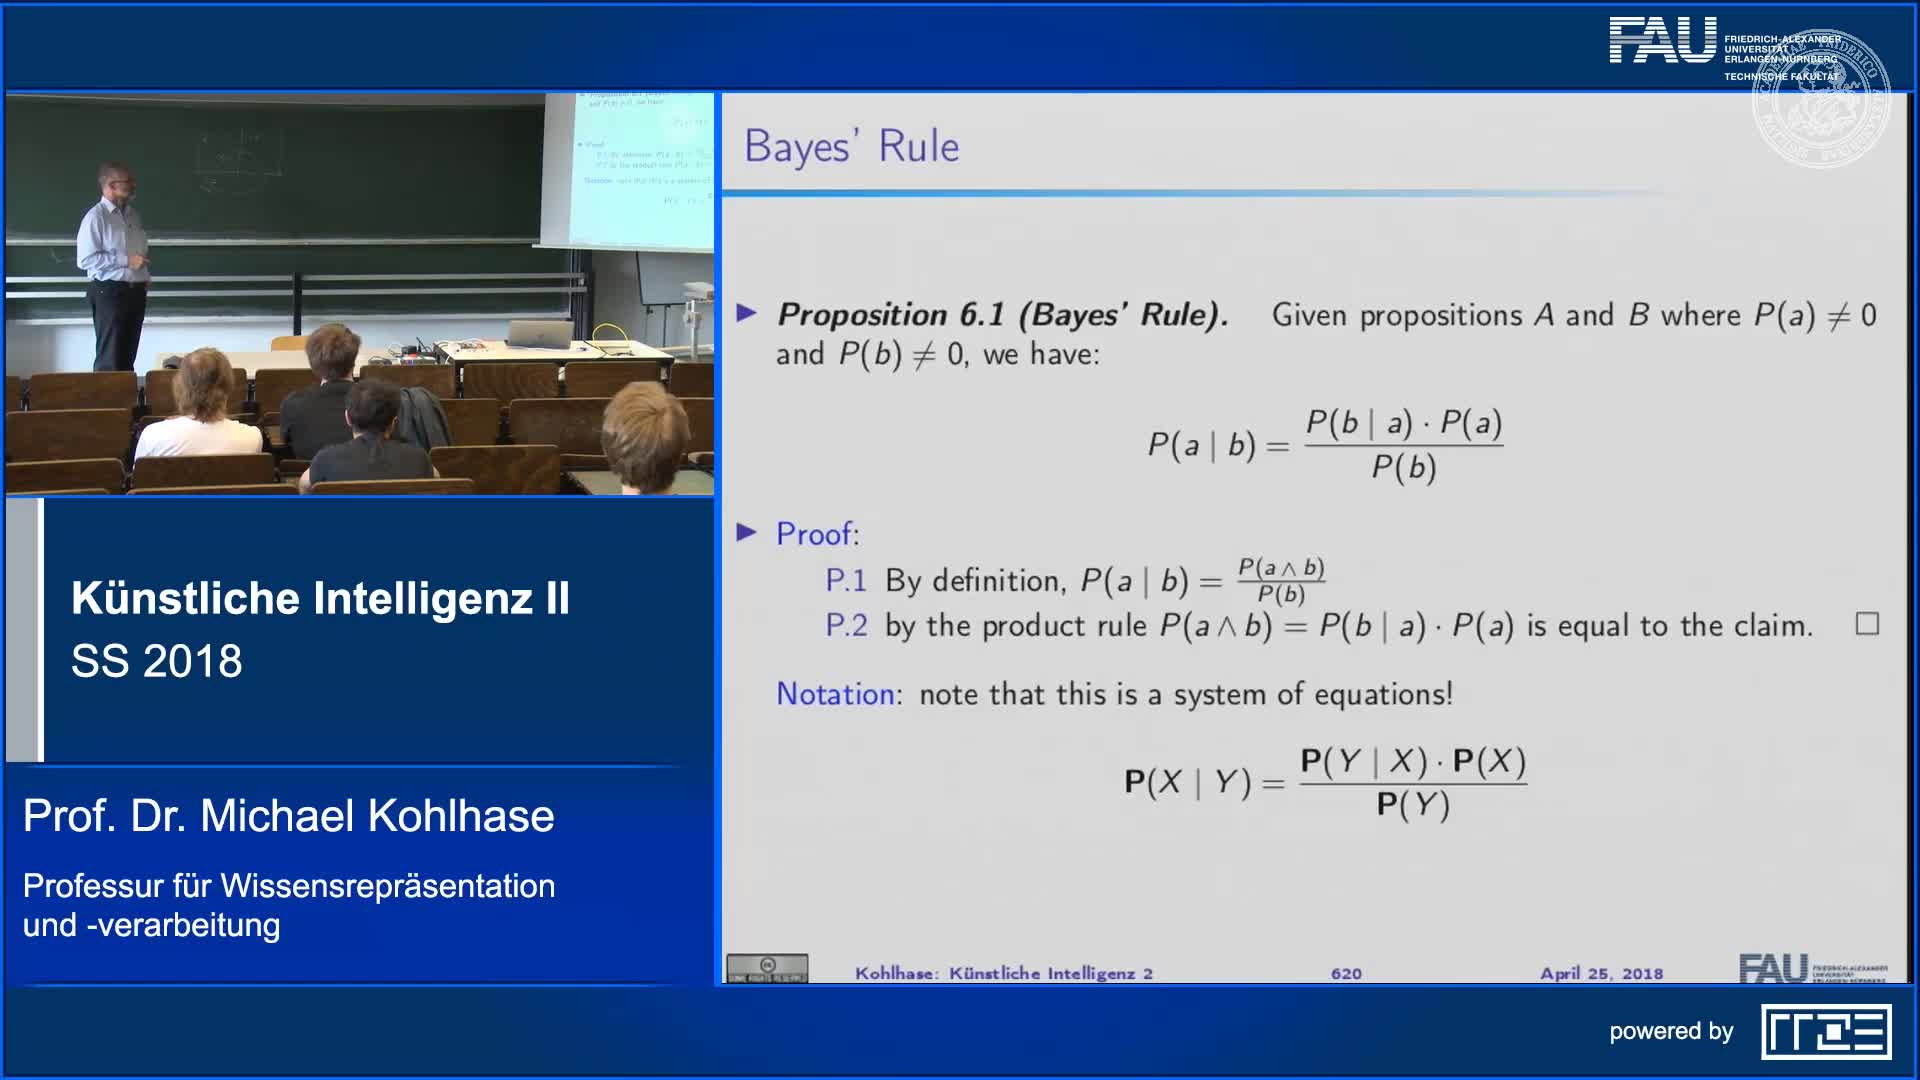 20.6. Bayes' Rule preview image